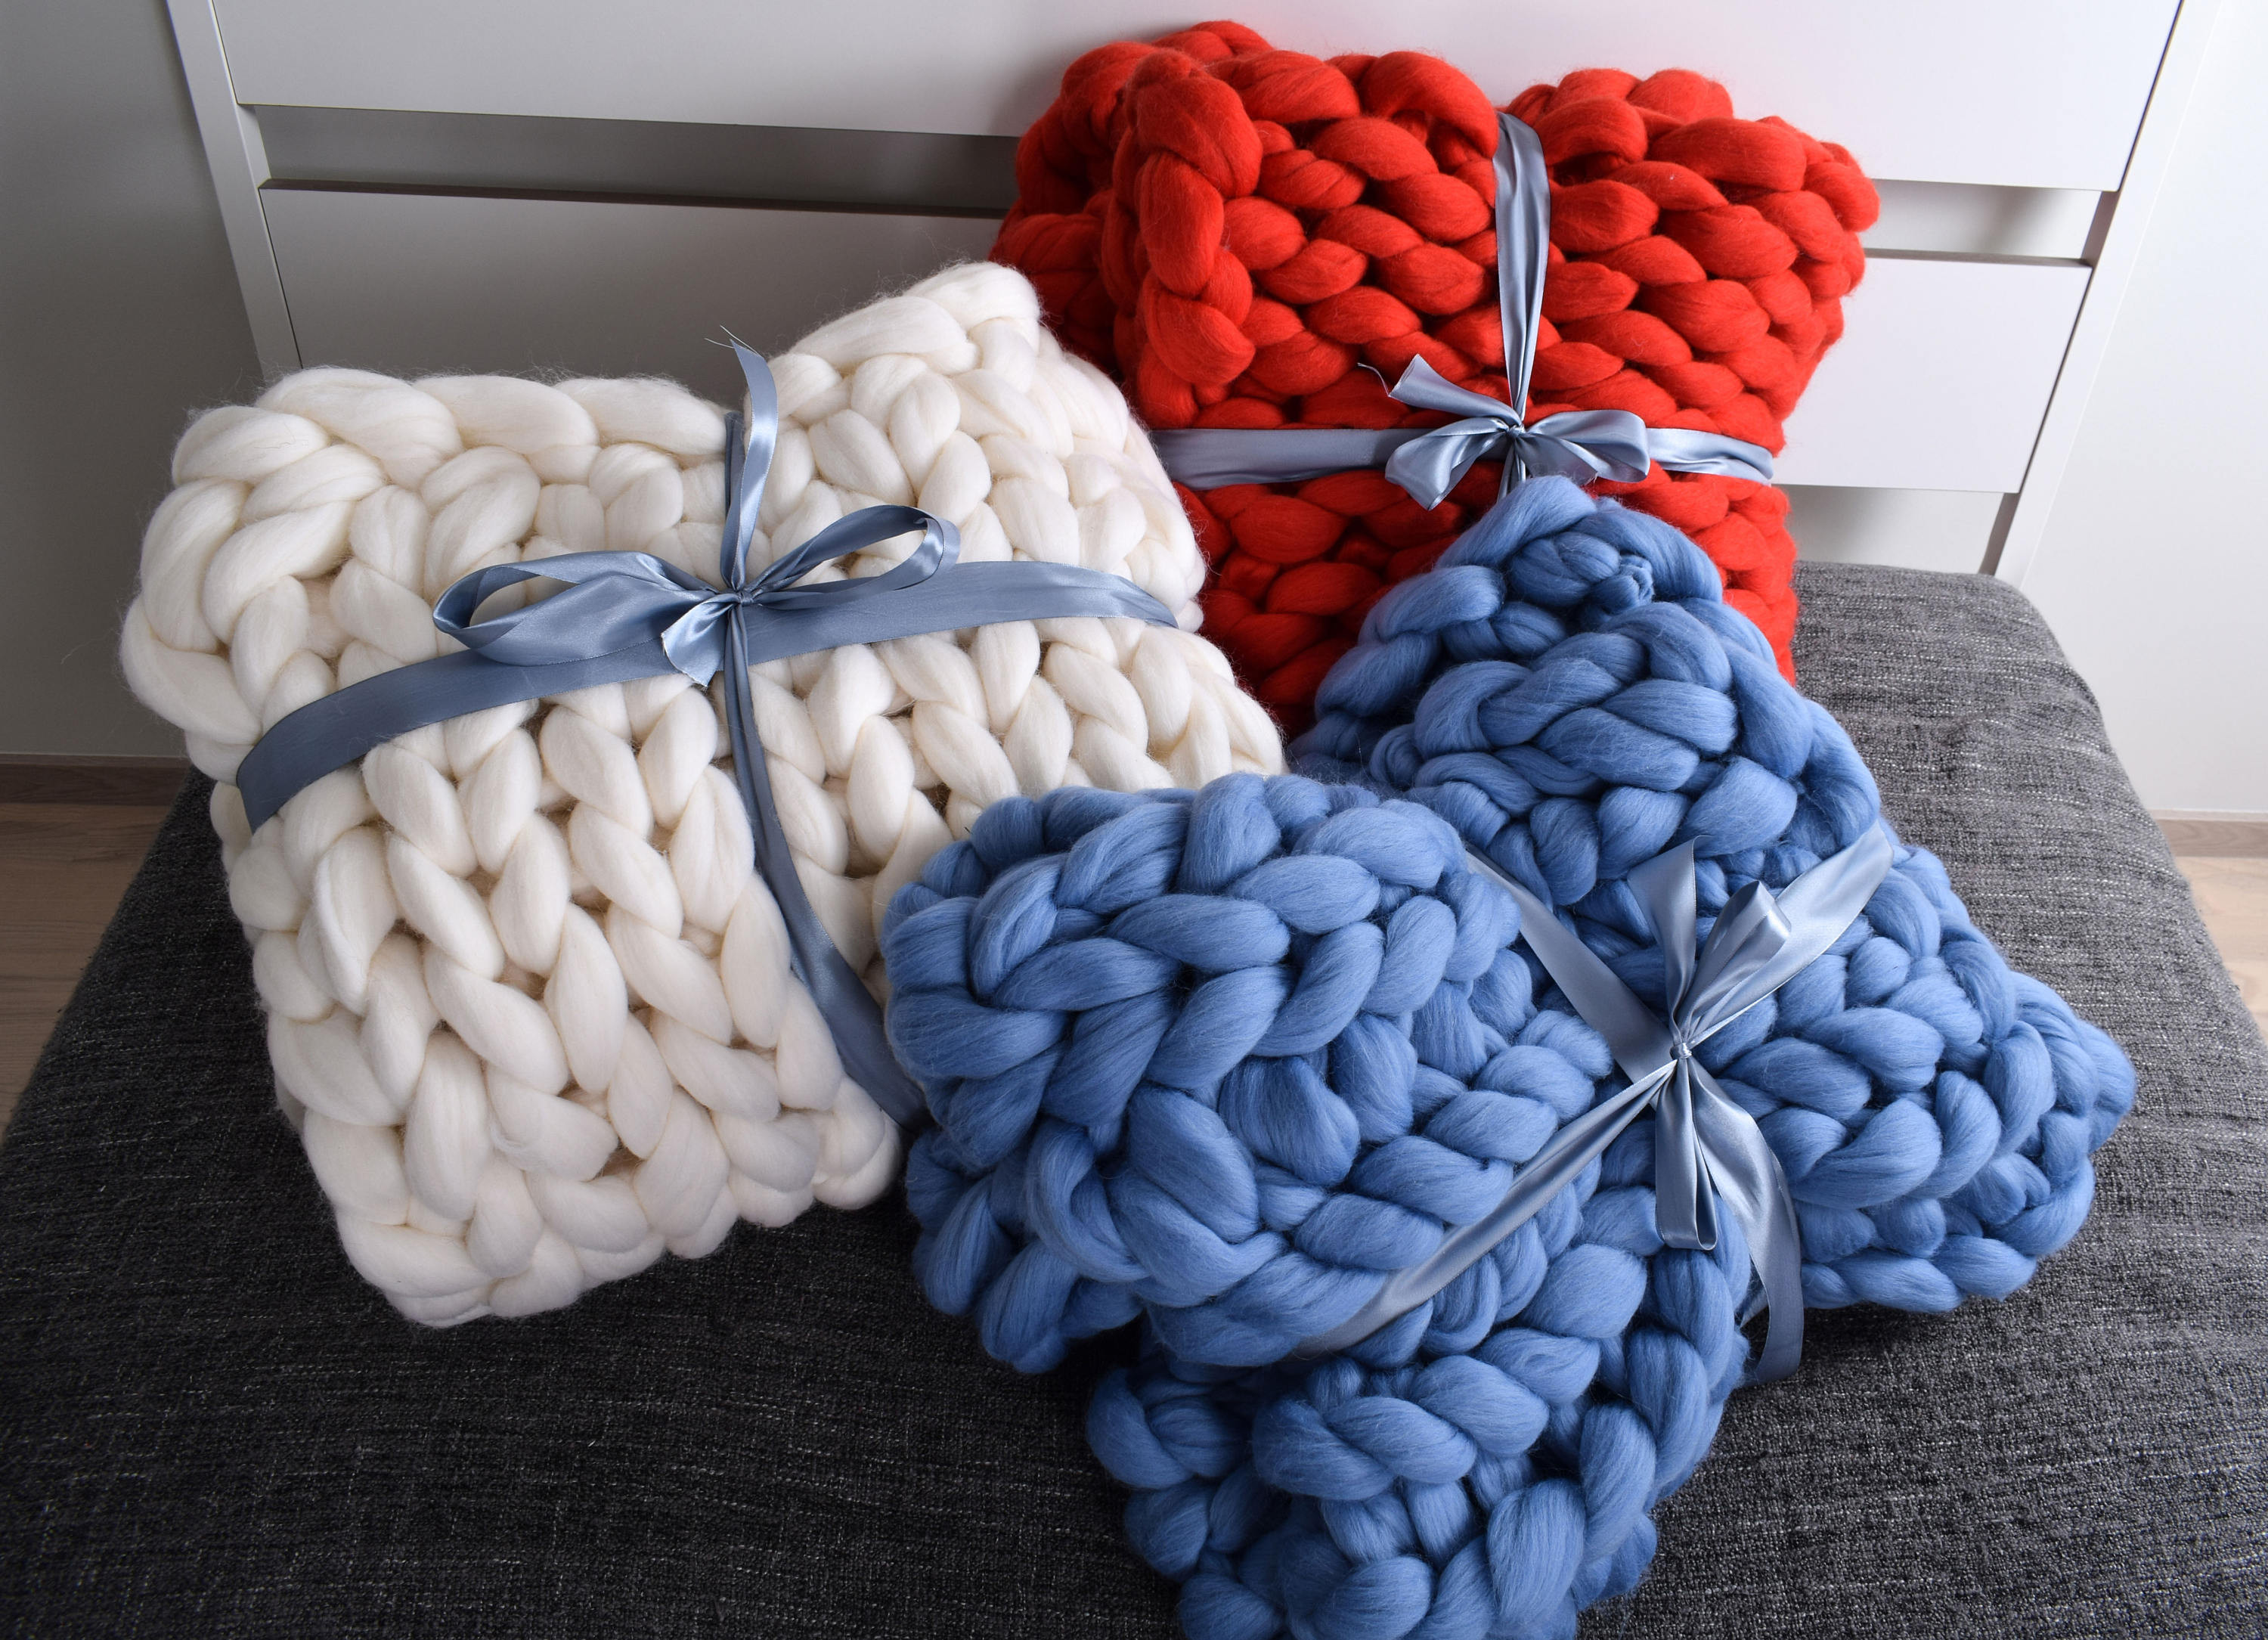 Chunky Knit Blanket Yarn Awesome Chunky Knit Blanket Blanket Super Chunky Blanket Giant Knit Of New 40 Pictures Chunky Knit Blanket Yarn